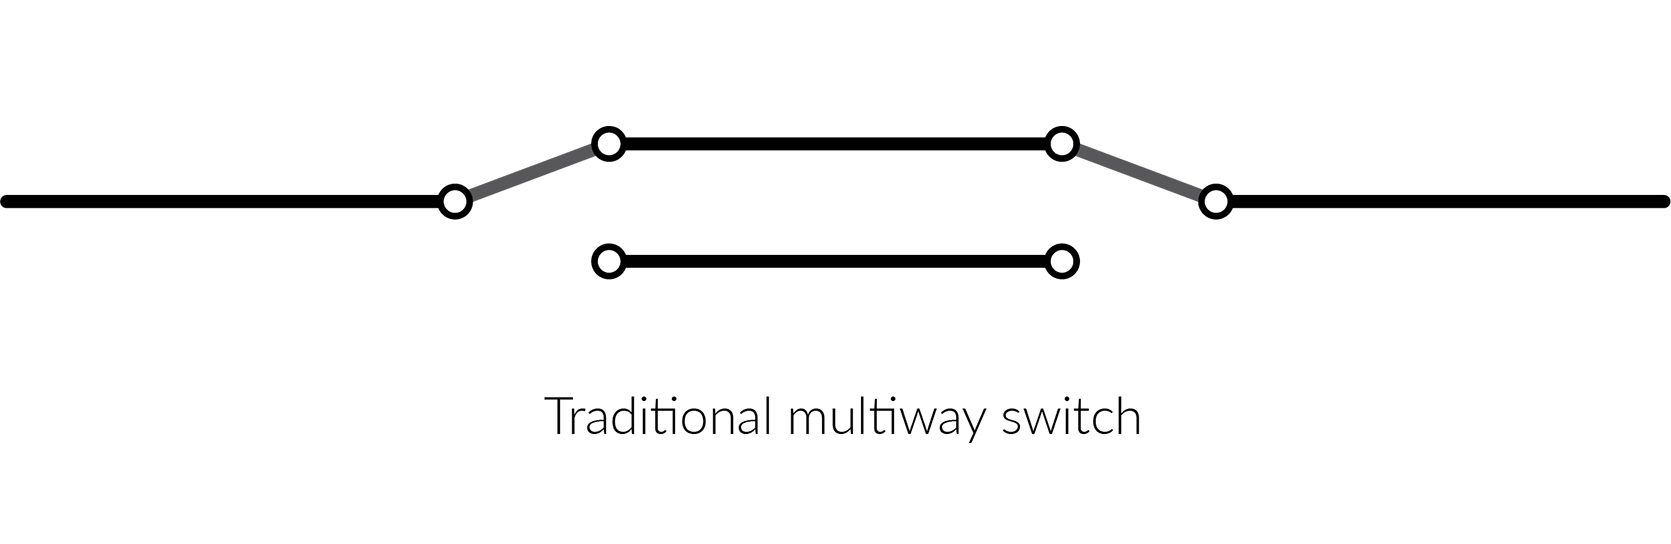 Multiway switch